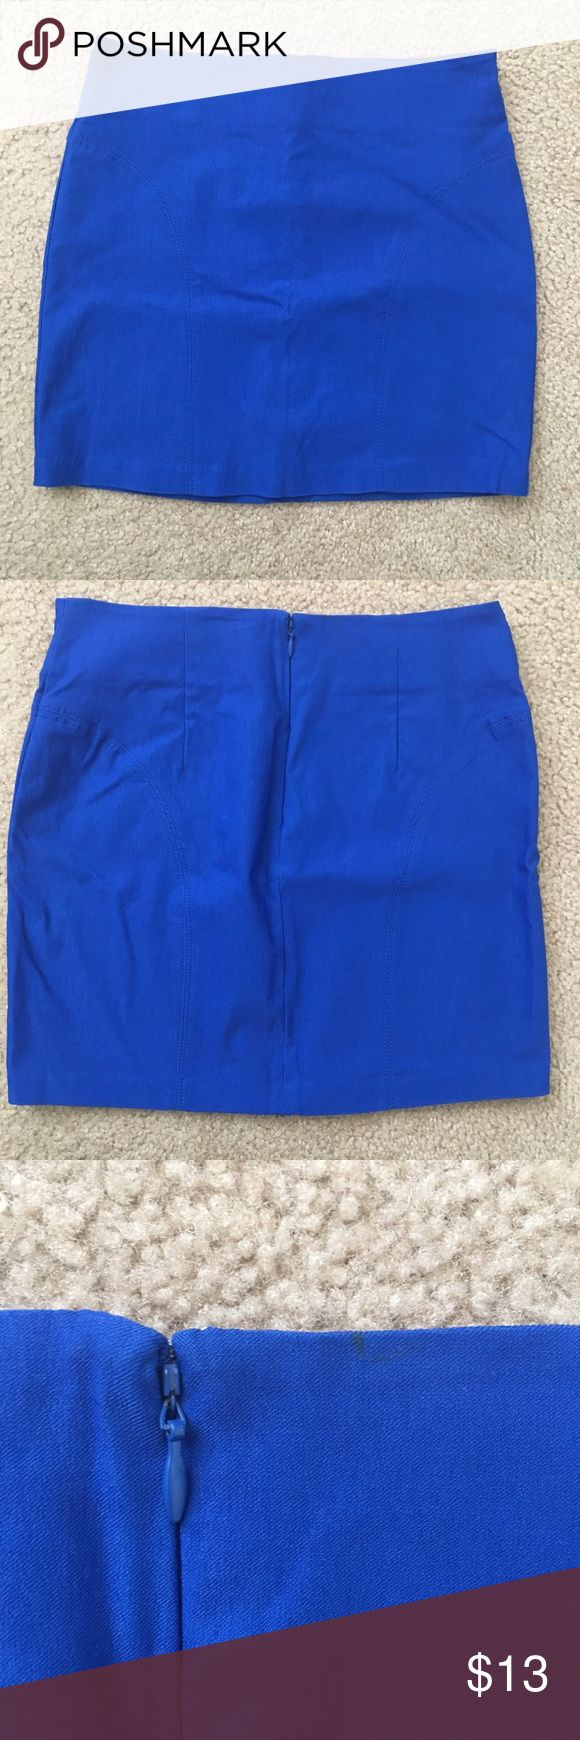 """Blue mini skirt •Length is 15.5"""" •74% rayon22% nylon 4% spandex •Small marking on the back as shown in the last picture  🎀check out the FREE with purchase items🎀 Forever 21 Skirts"""